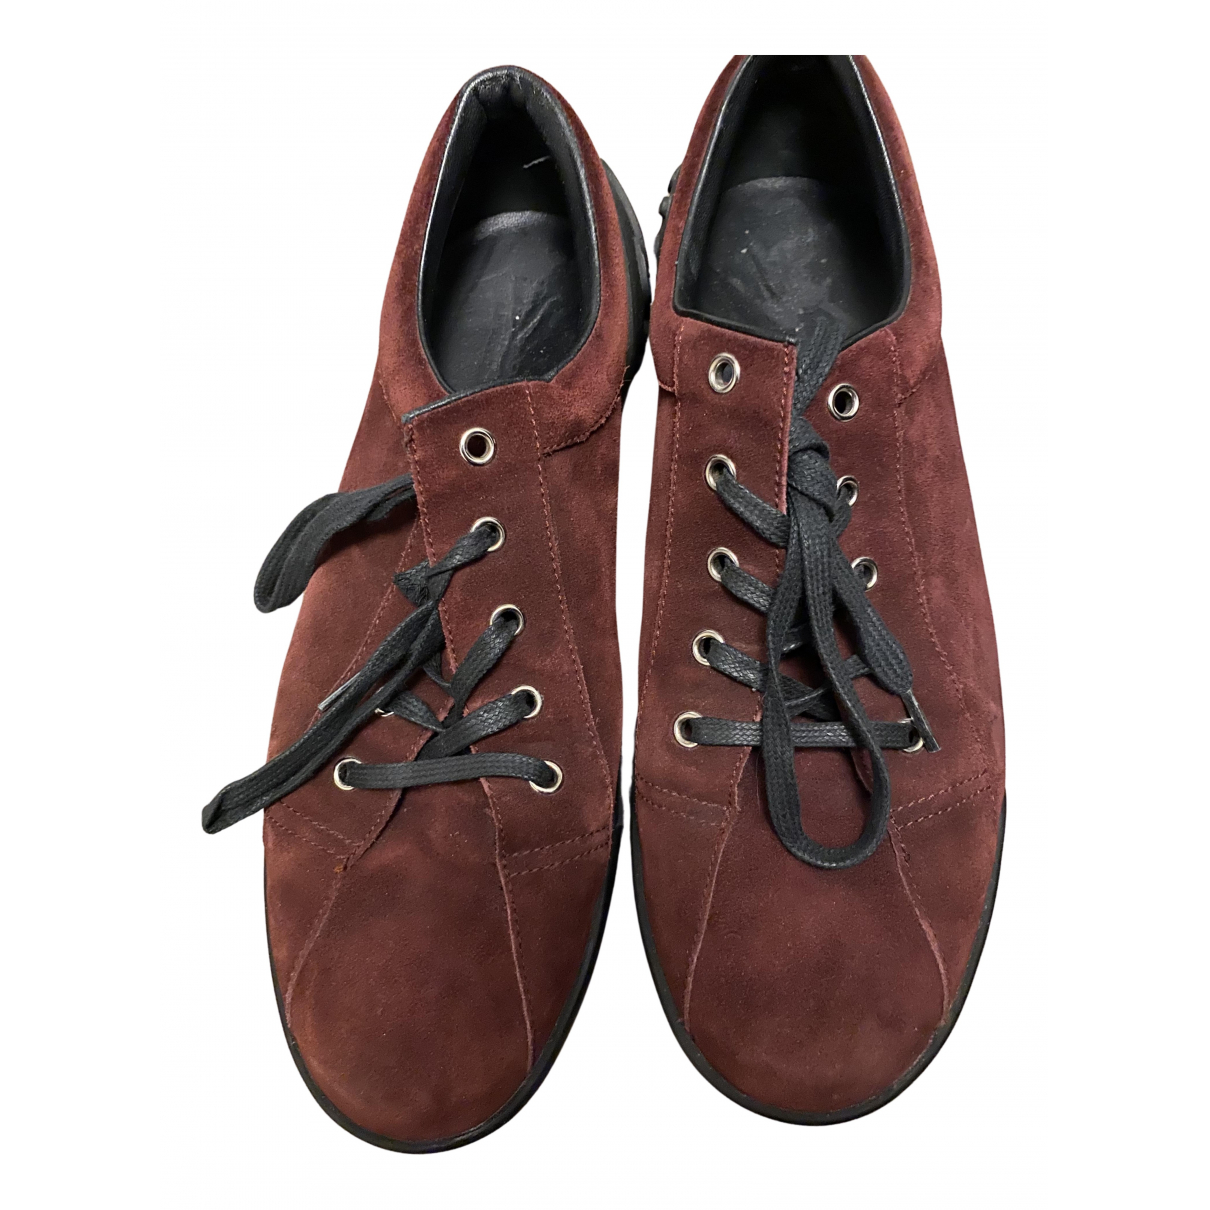 Gucci N Burgundy Suede Trainers for Men 7 UK